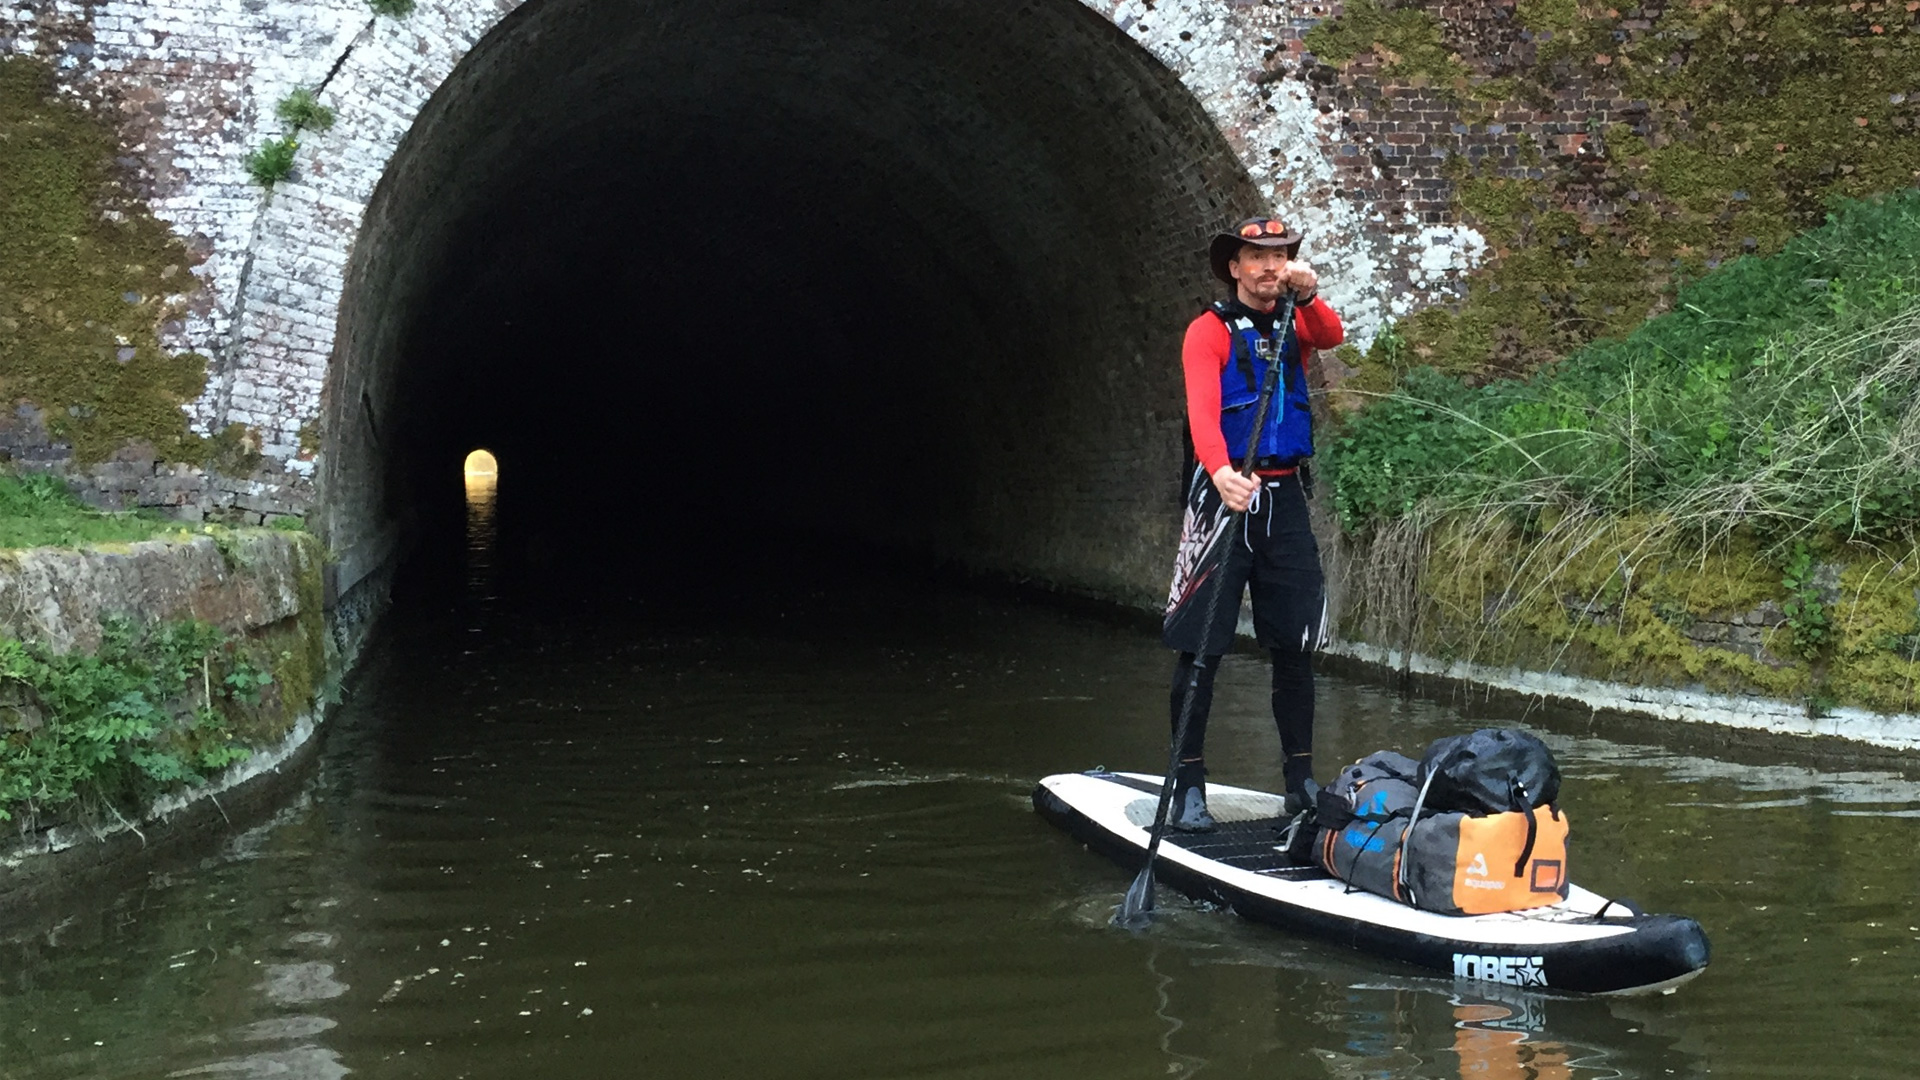 Paddleboarding through Canal Tunnels